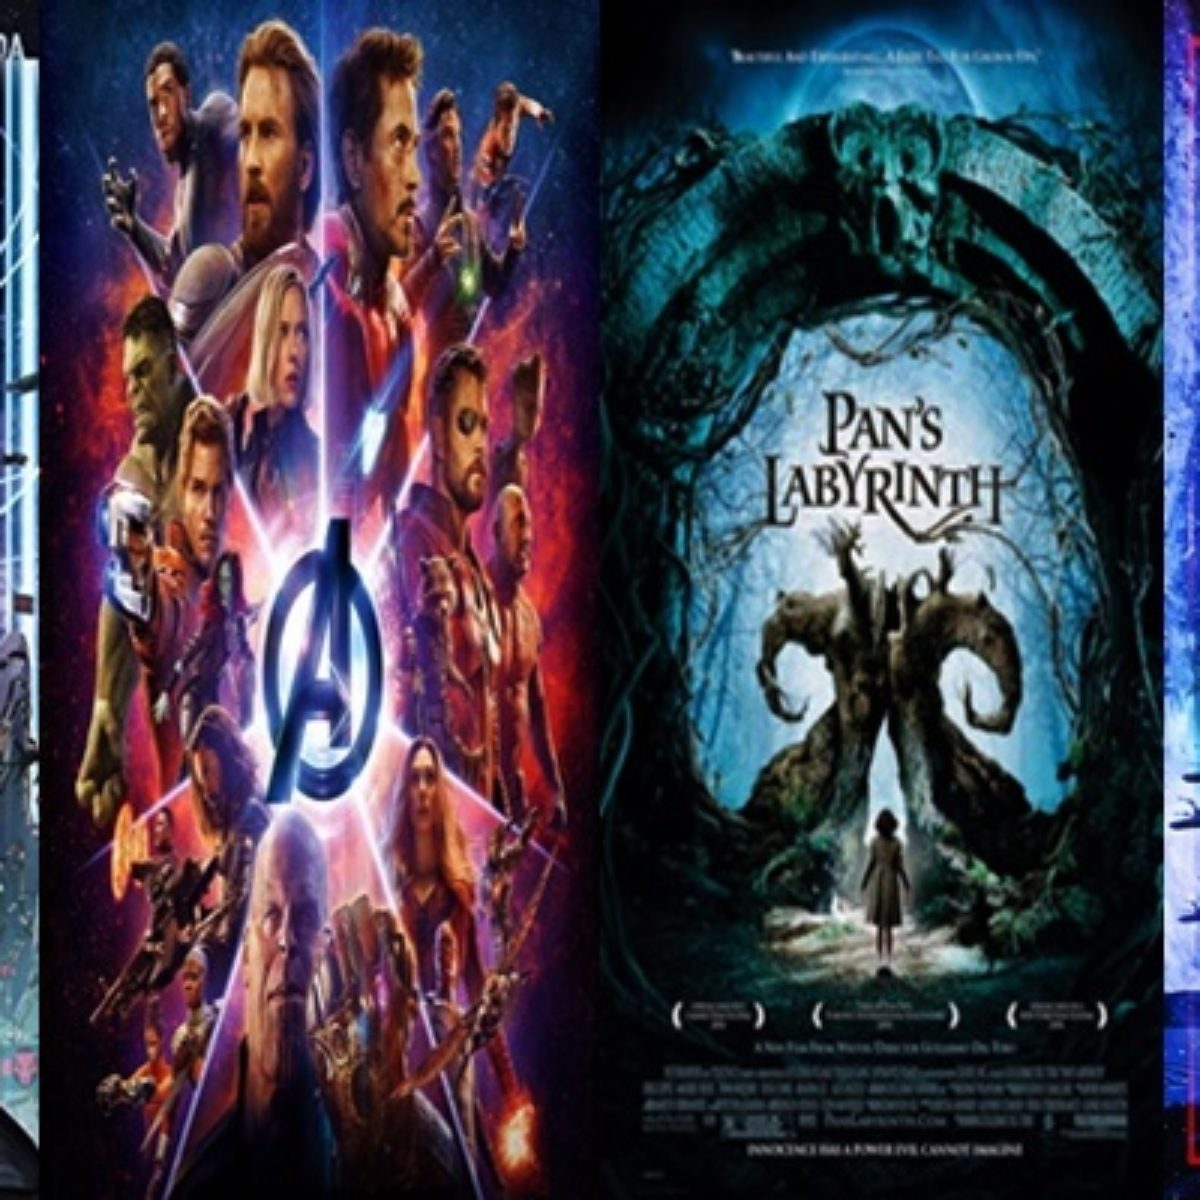 Allo Movies Streaming top 50 movies in netflix that are available for streaming now